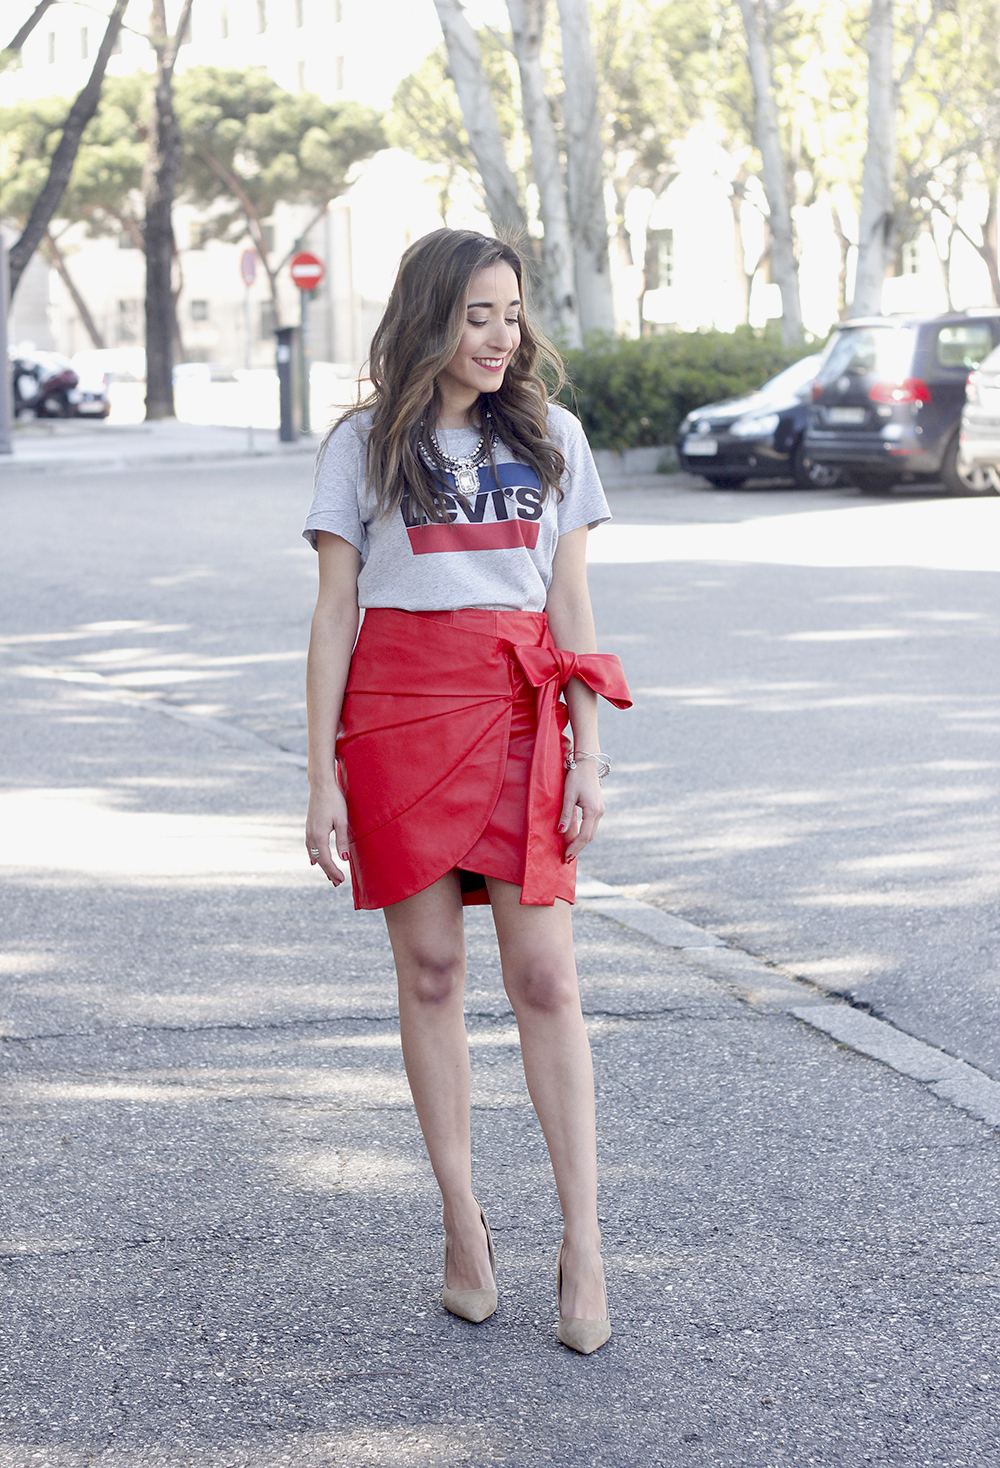 red leather skirt uterqüe Levi's T-Shirt nude heels outfit style fashion spring01